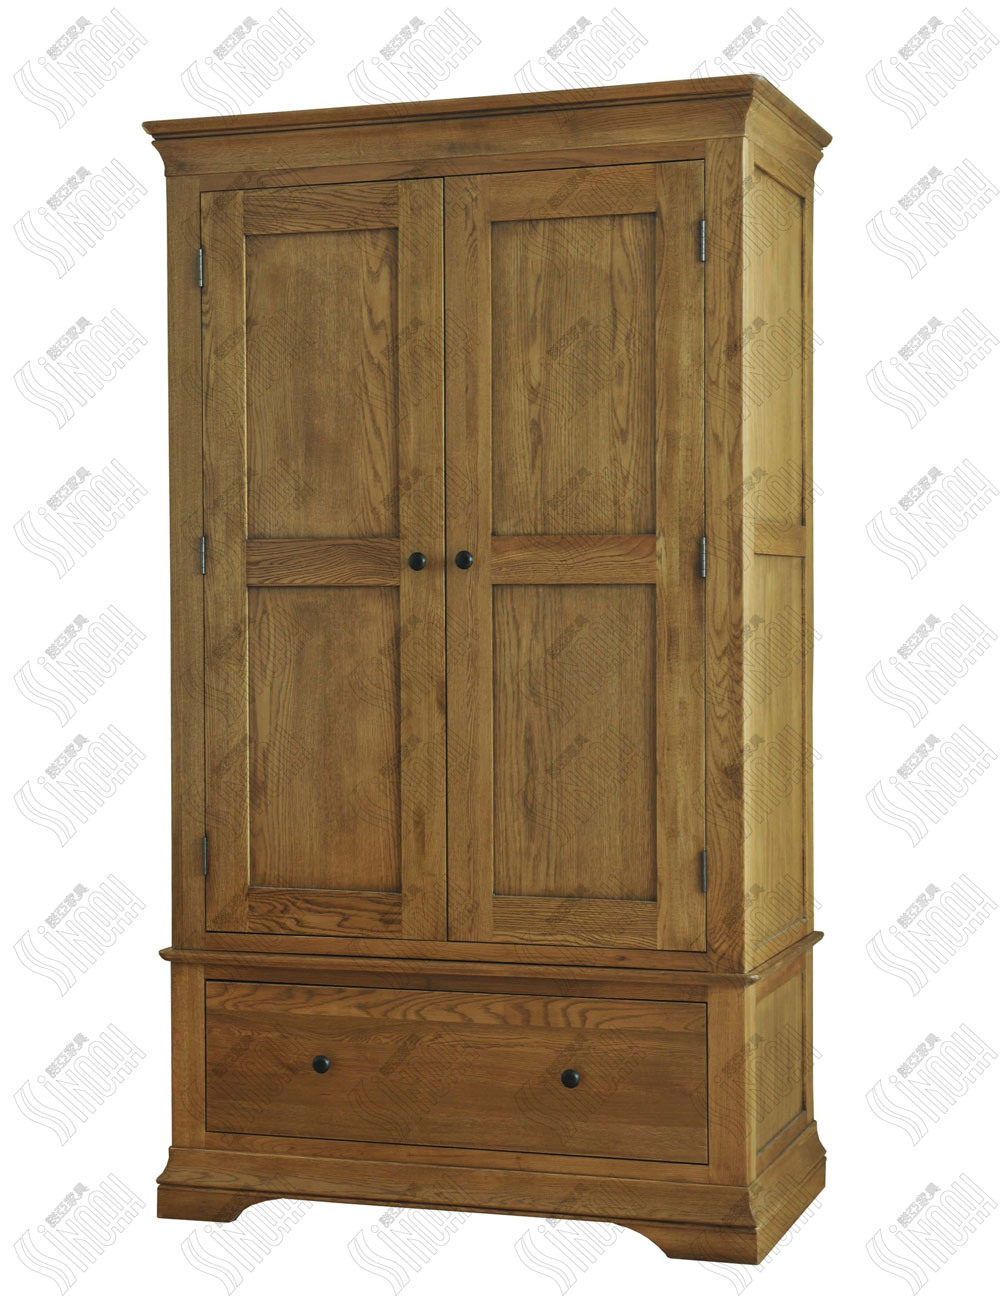 Solid oak wooden gents wardrobe photos